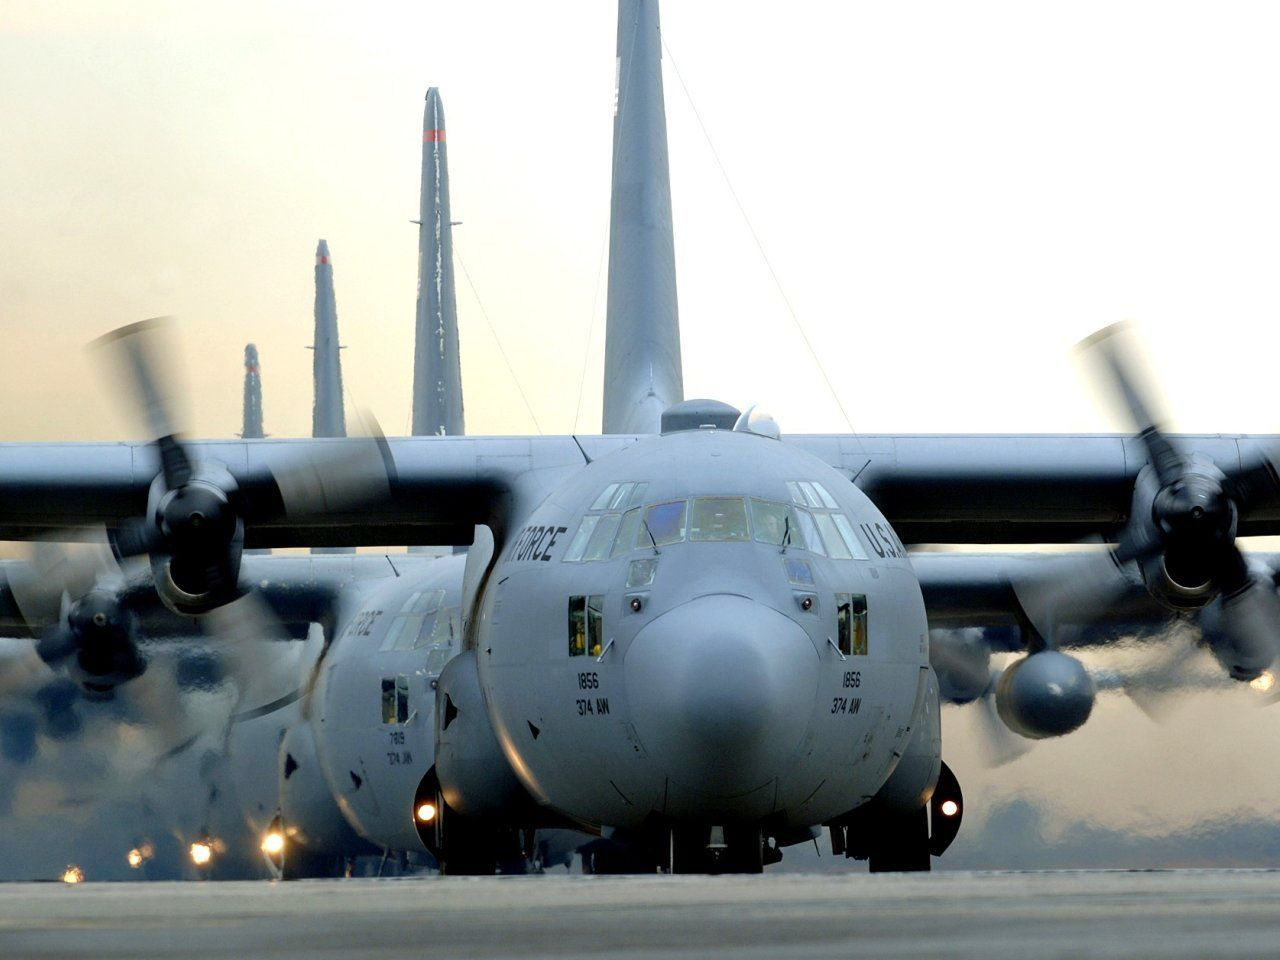 c130 solvent and cleaners